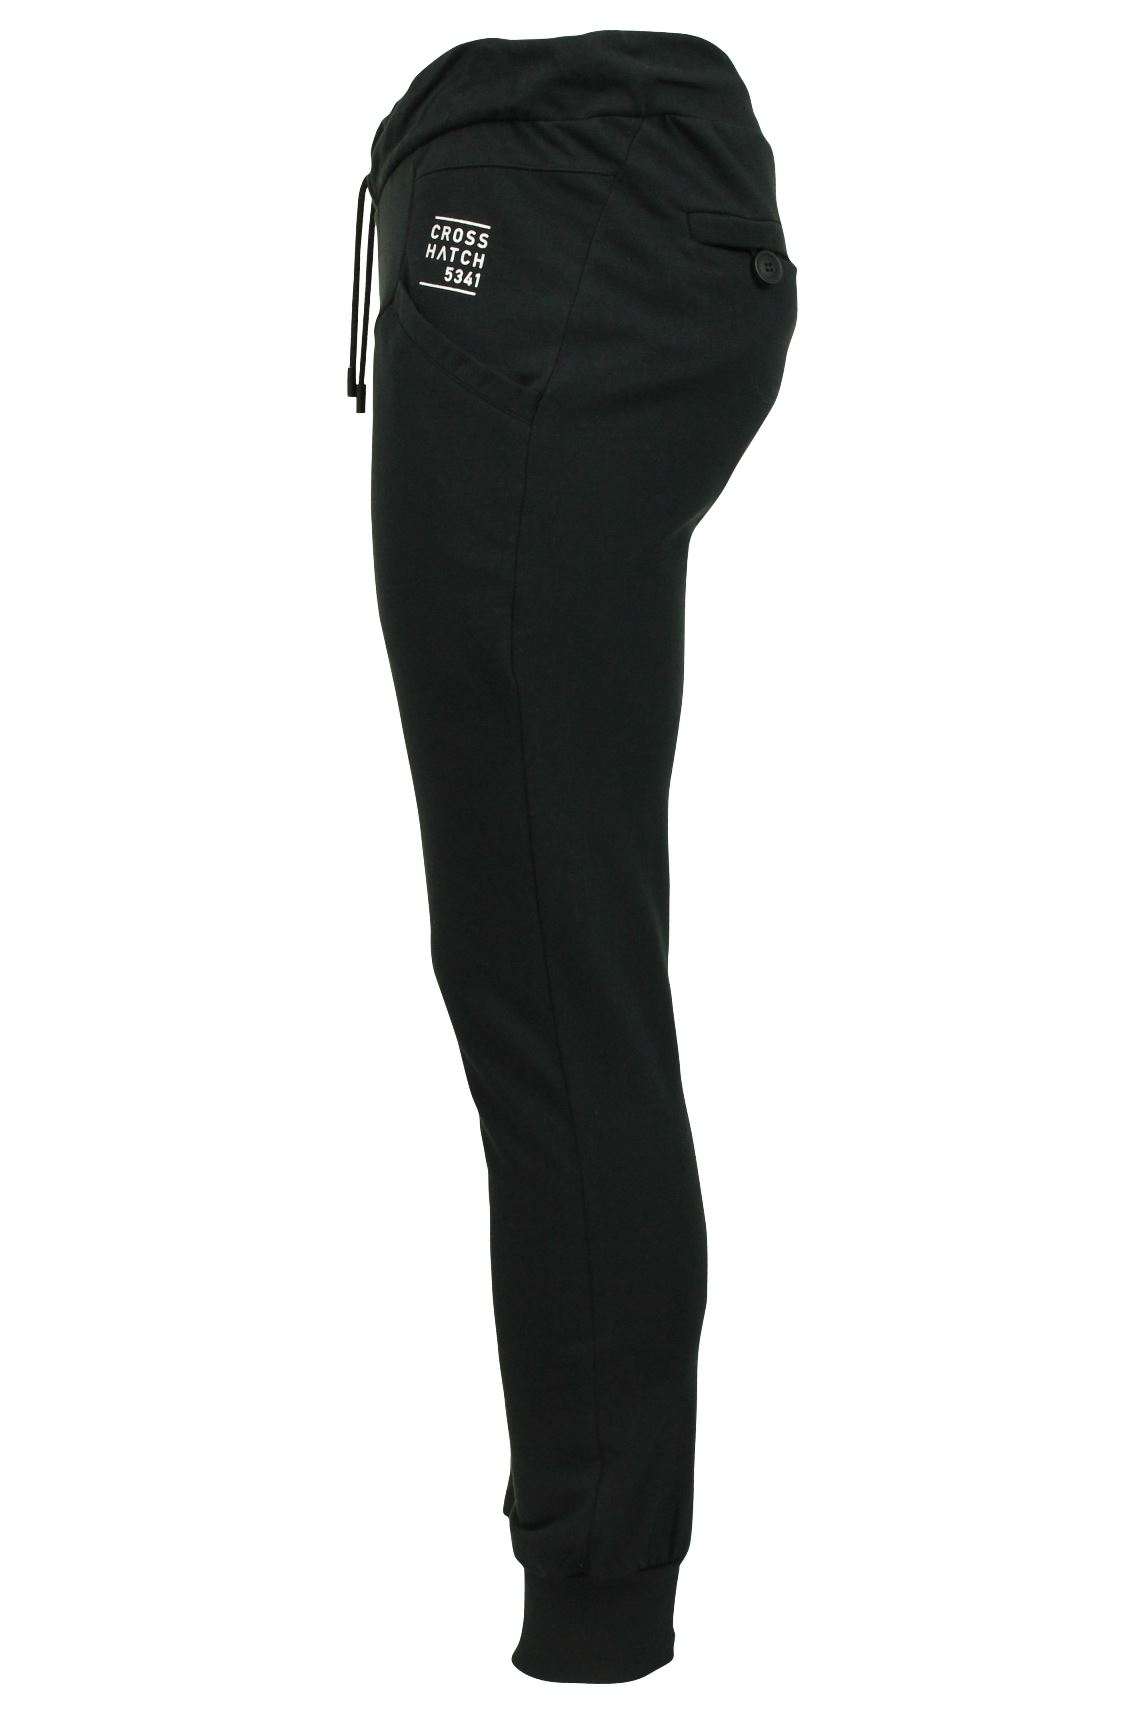 Mens-Skinny-Joggers-by-Crosshatch-039-Sidwell-039 thumbnail 4